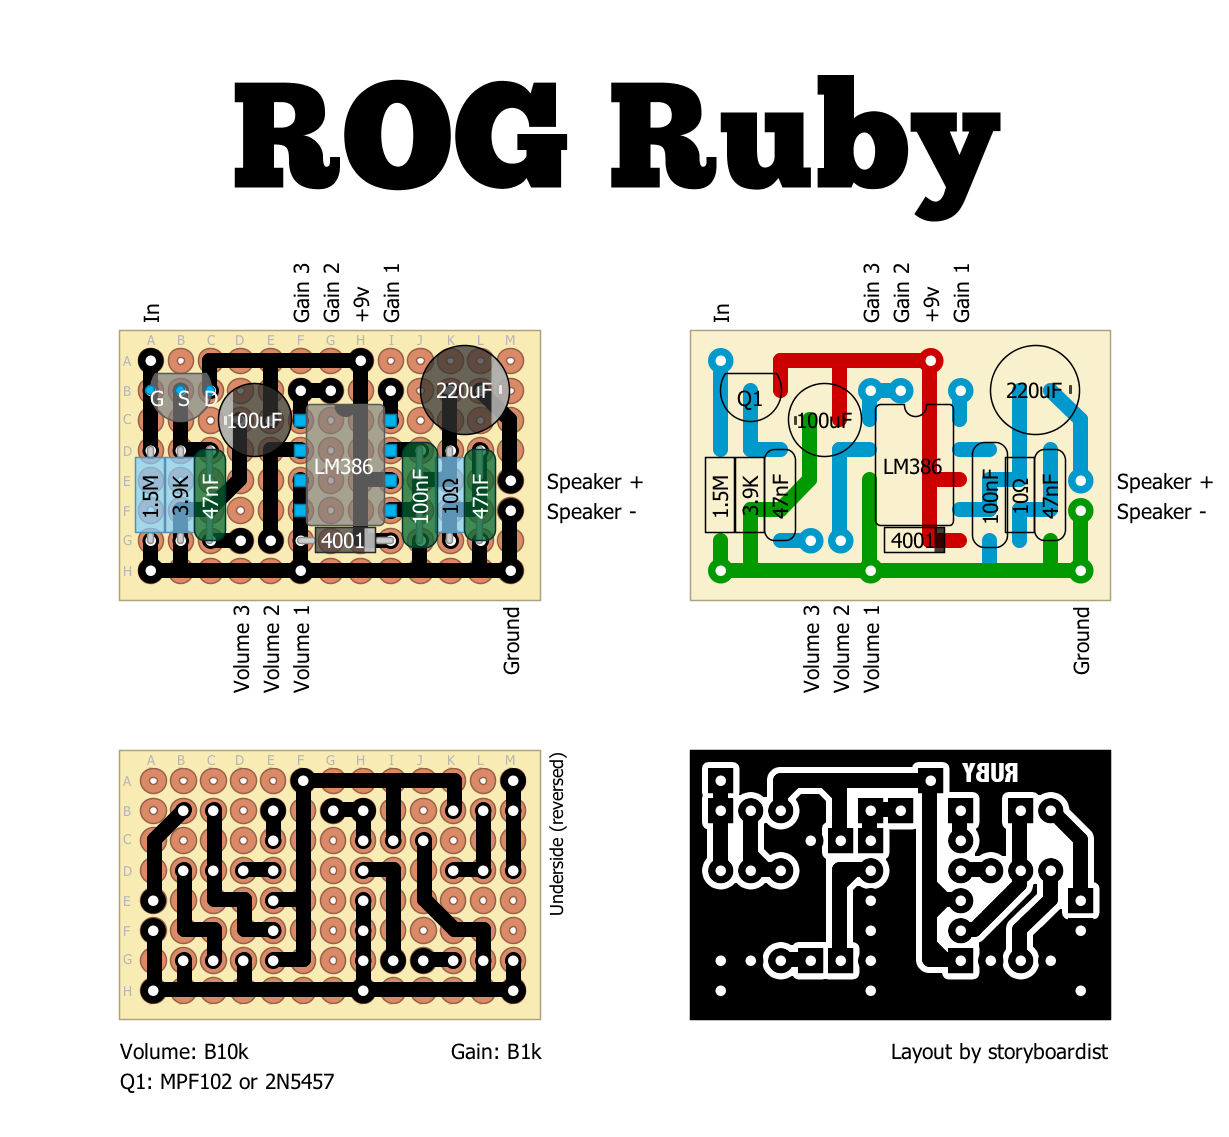 Perf And Pcb Effects Layouts Run Off Groove Ruby Amplifier Circuit Using Lm380 With Mic 400x400 Mini So Heres Rogs Rubya 386 Based That Can Easily Fit In A 1590a Or Even An Altoids Tin Check Out The Rog Article On For More Info